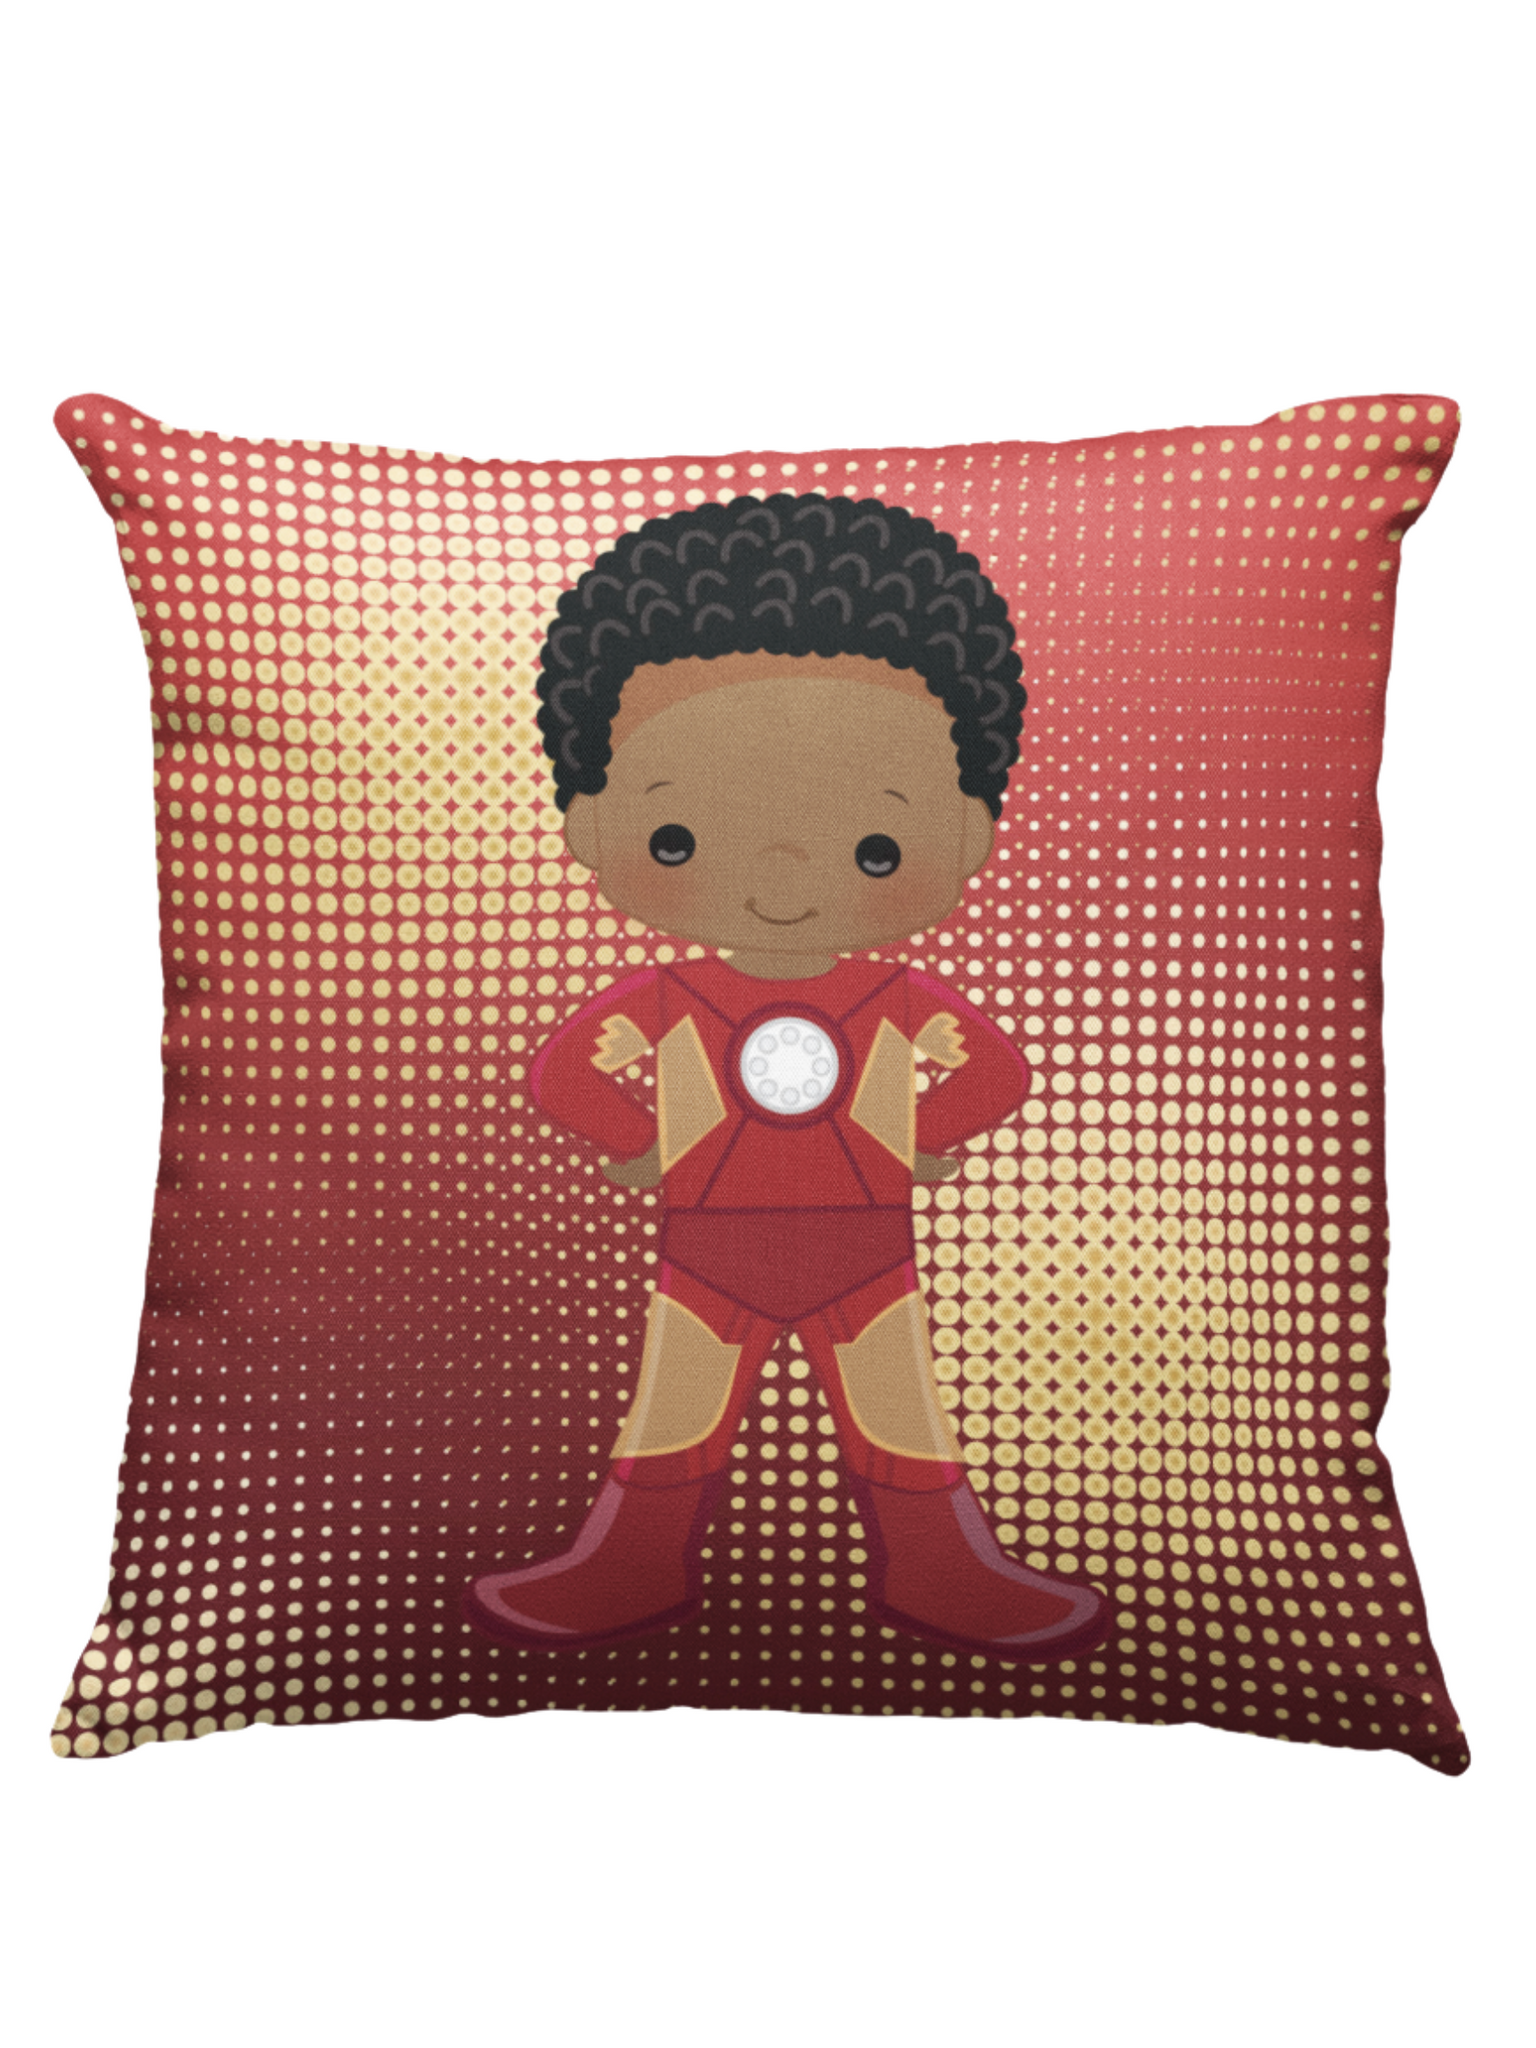 Learning Pillow ~ Iron Man Inspired 18 x 18 Throw Pillow